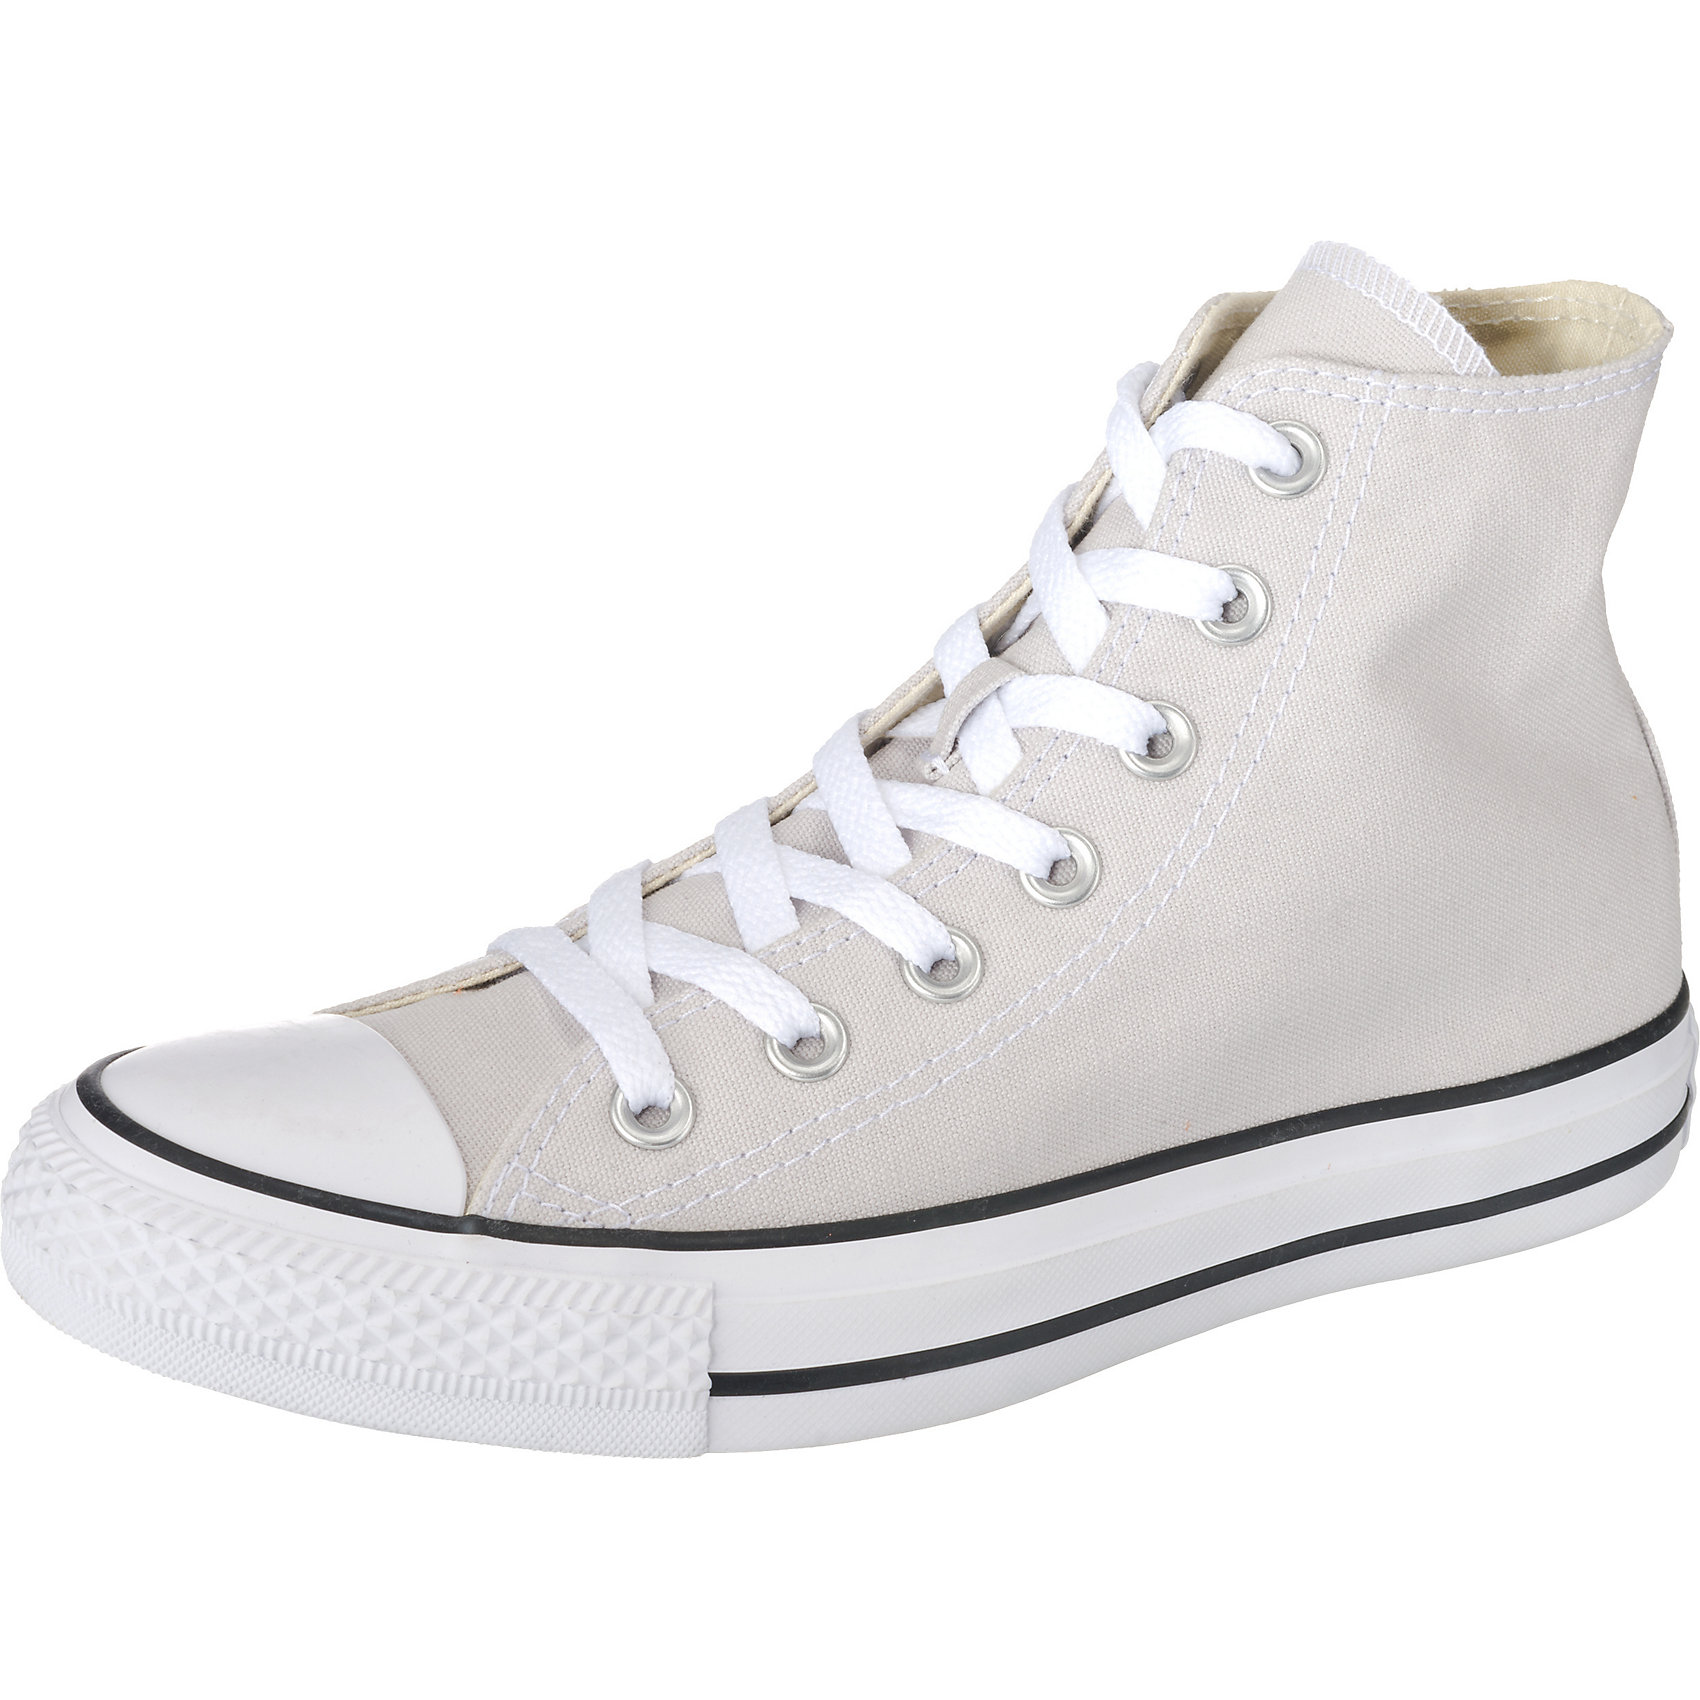 Neu CONVERSE Chuck Taylor All Damen Star Sneakers High 8658312 für Damen All grau f0d682